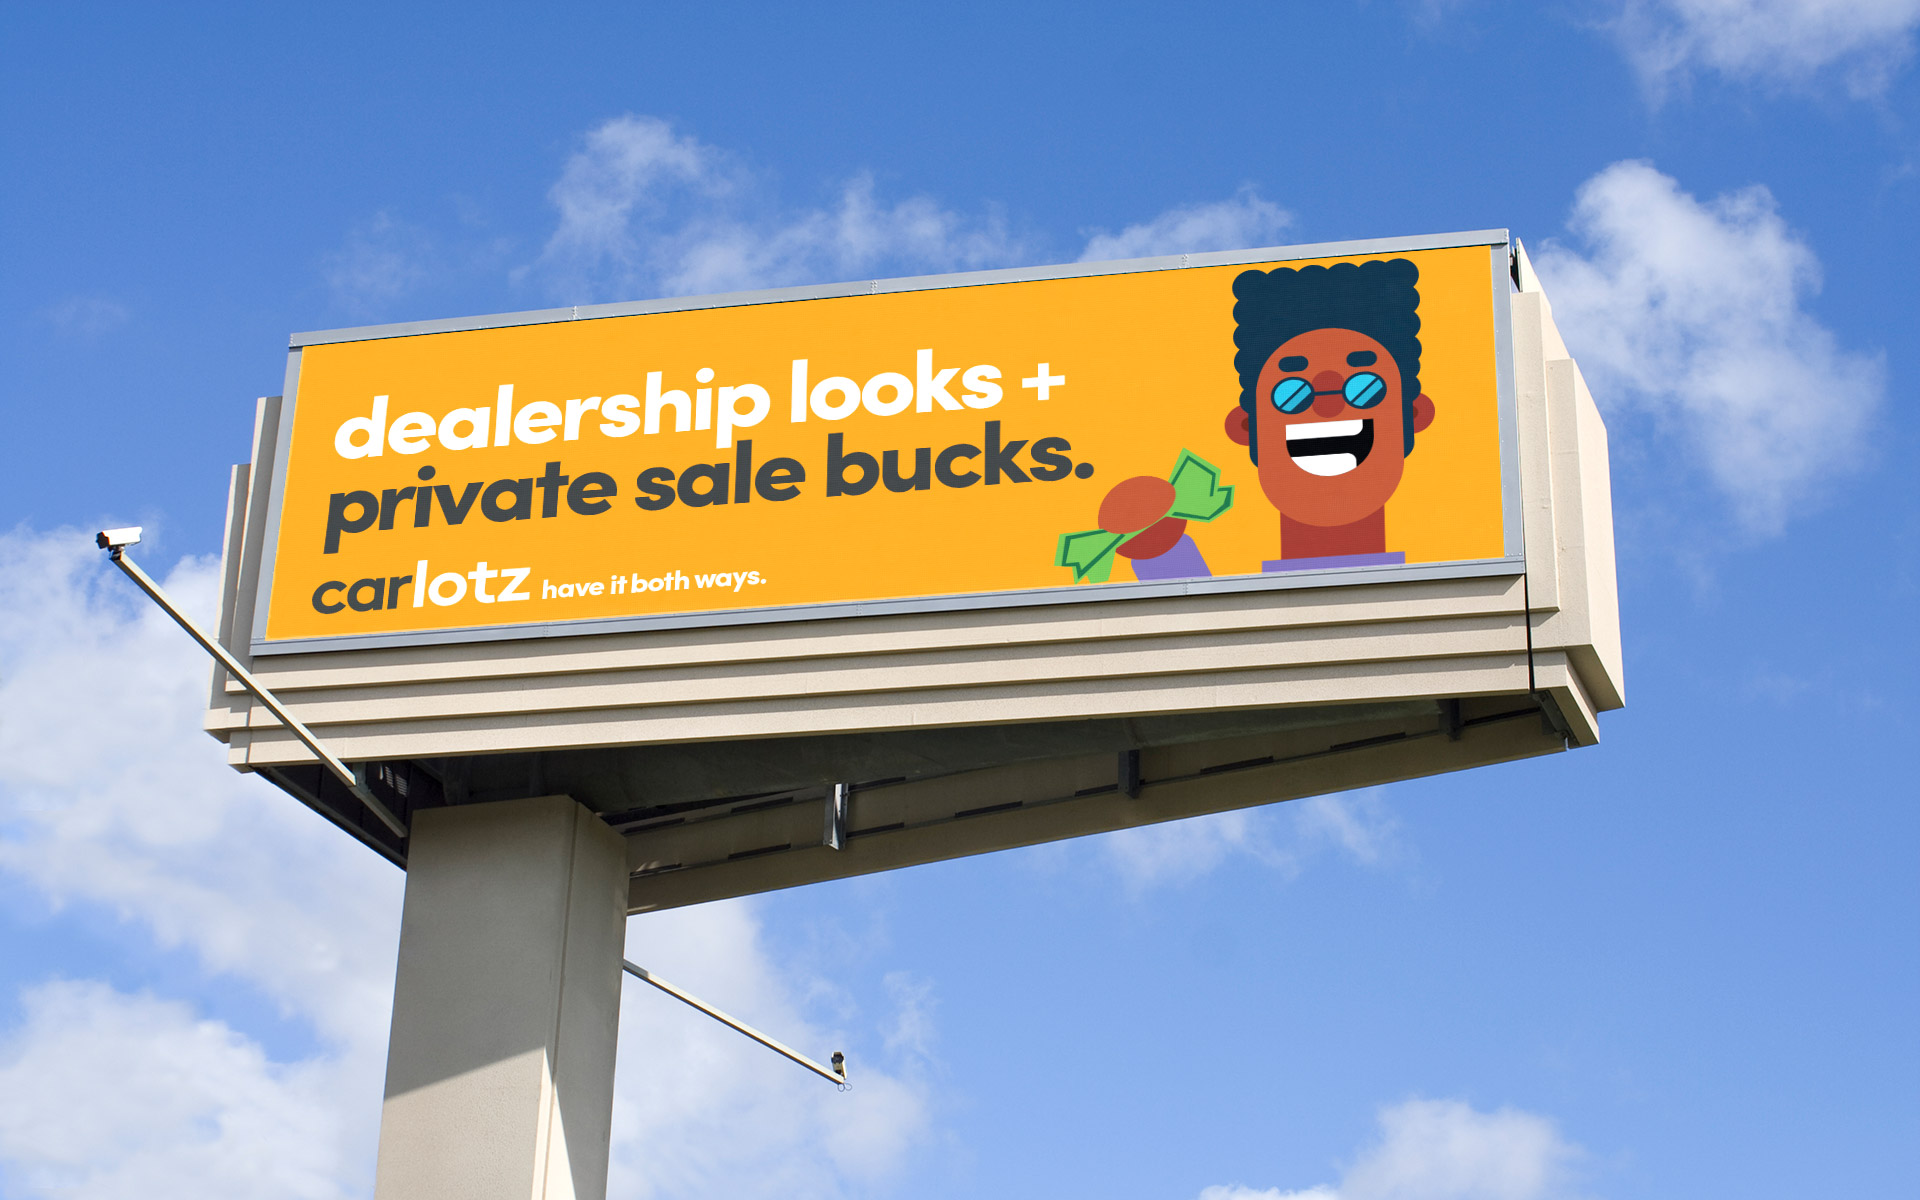 One of the billboard ads for CarLotz.